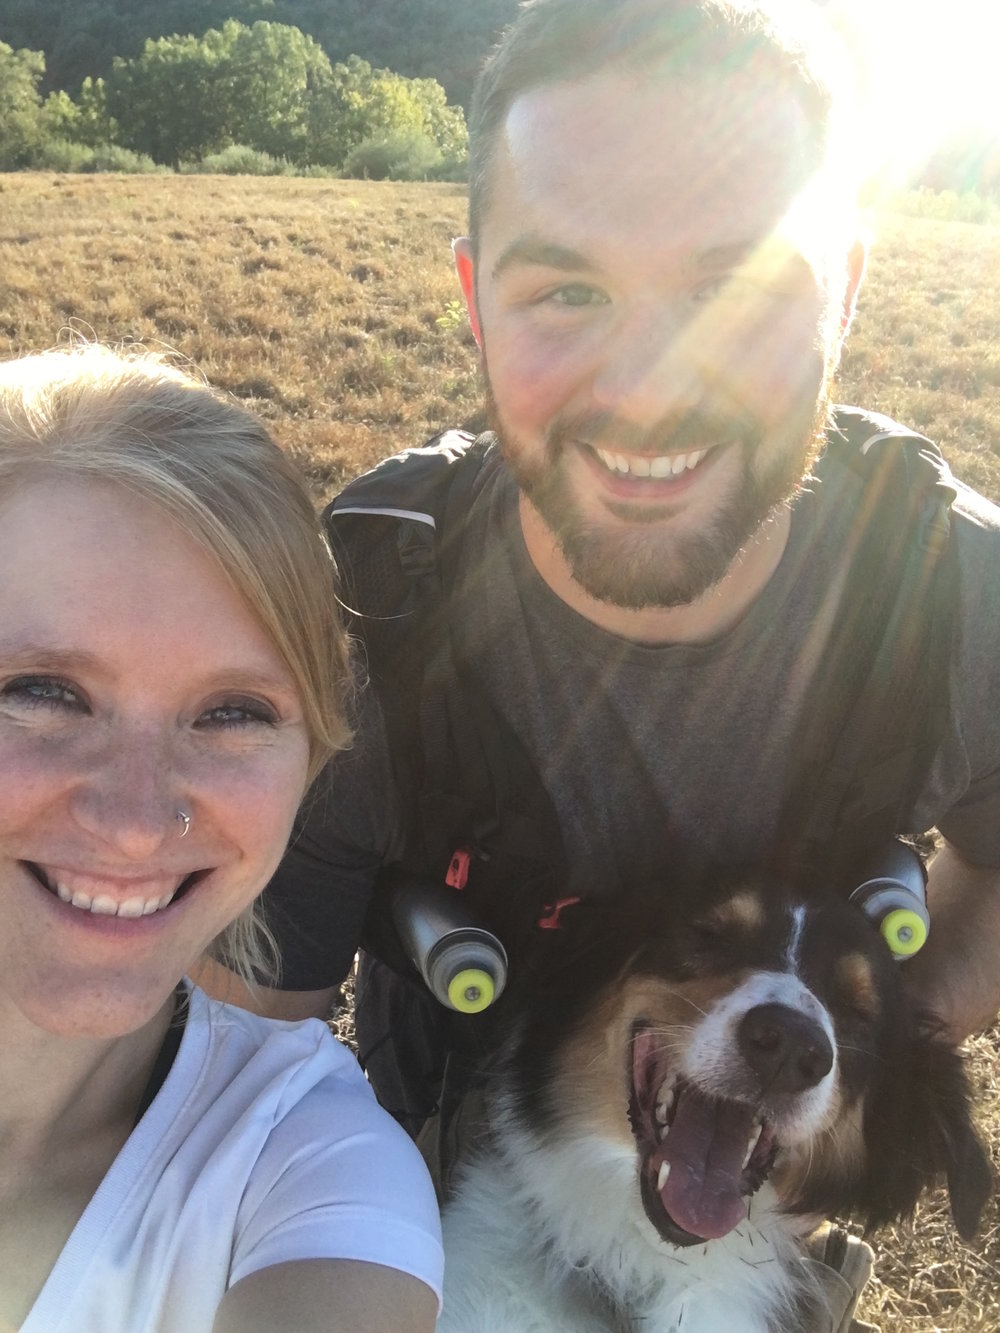 Pictured: Serina hiking with her husband and their dog